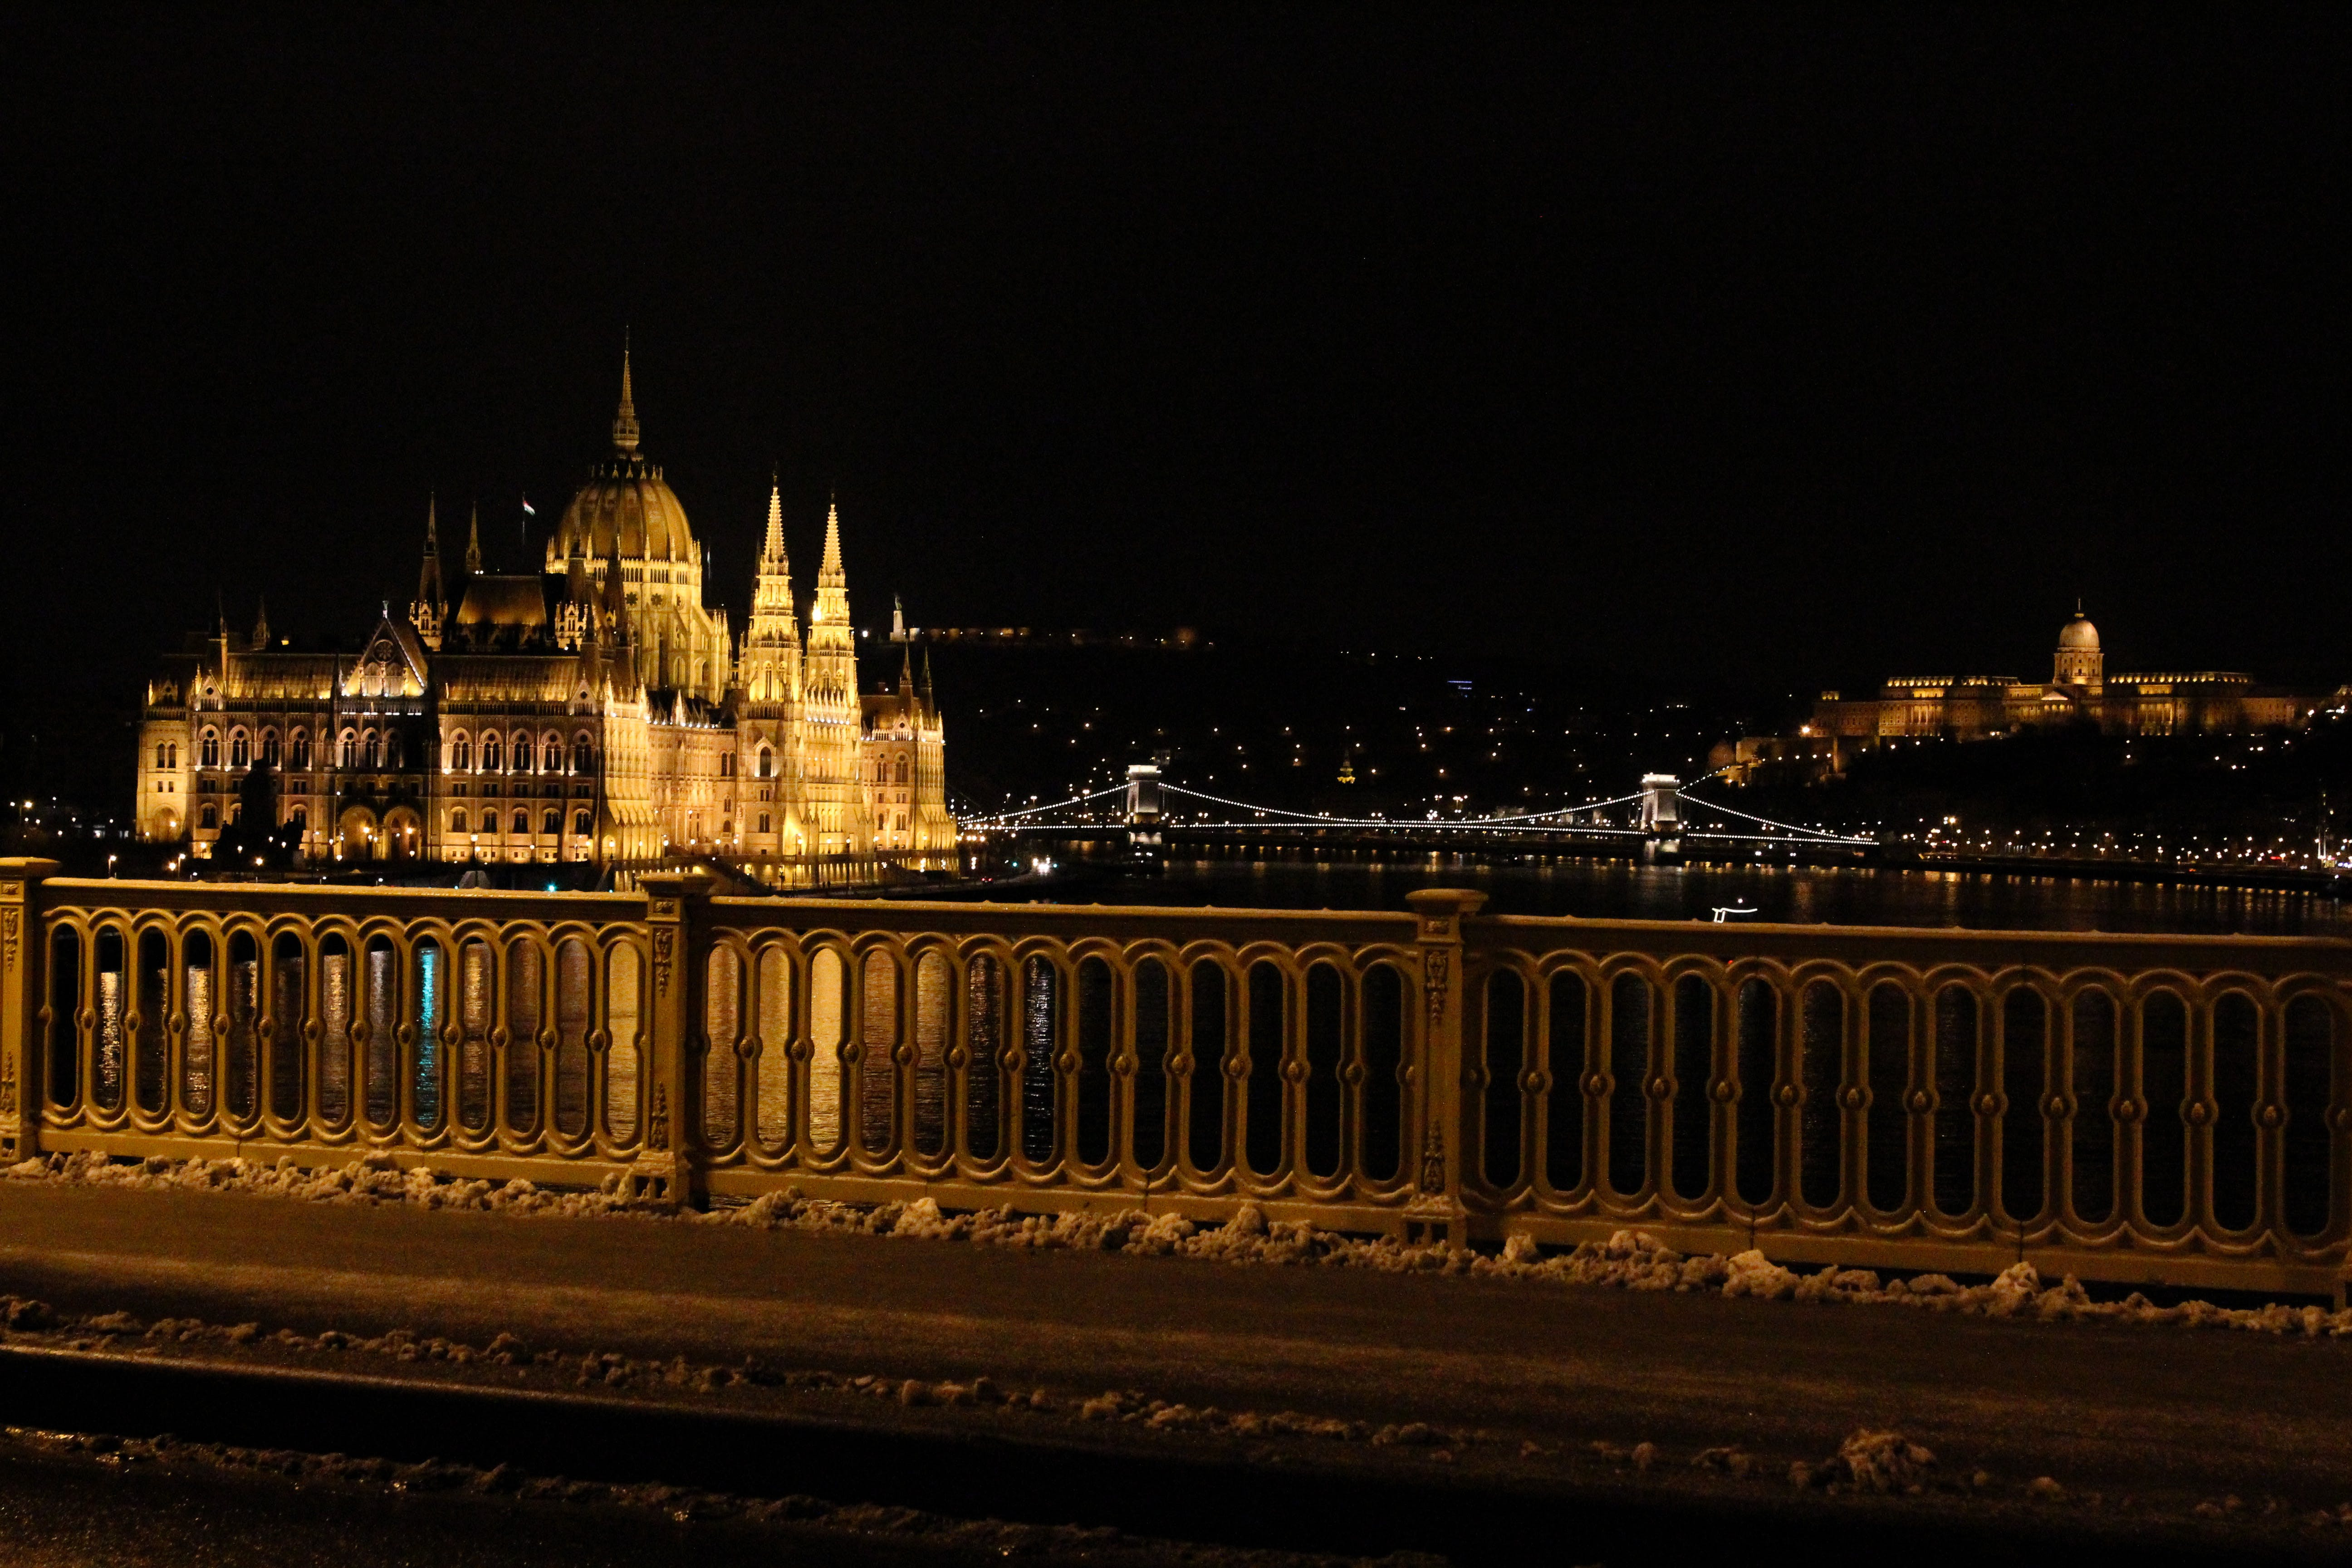 Free stock photo of #Budapest#Parlament#Danube